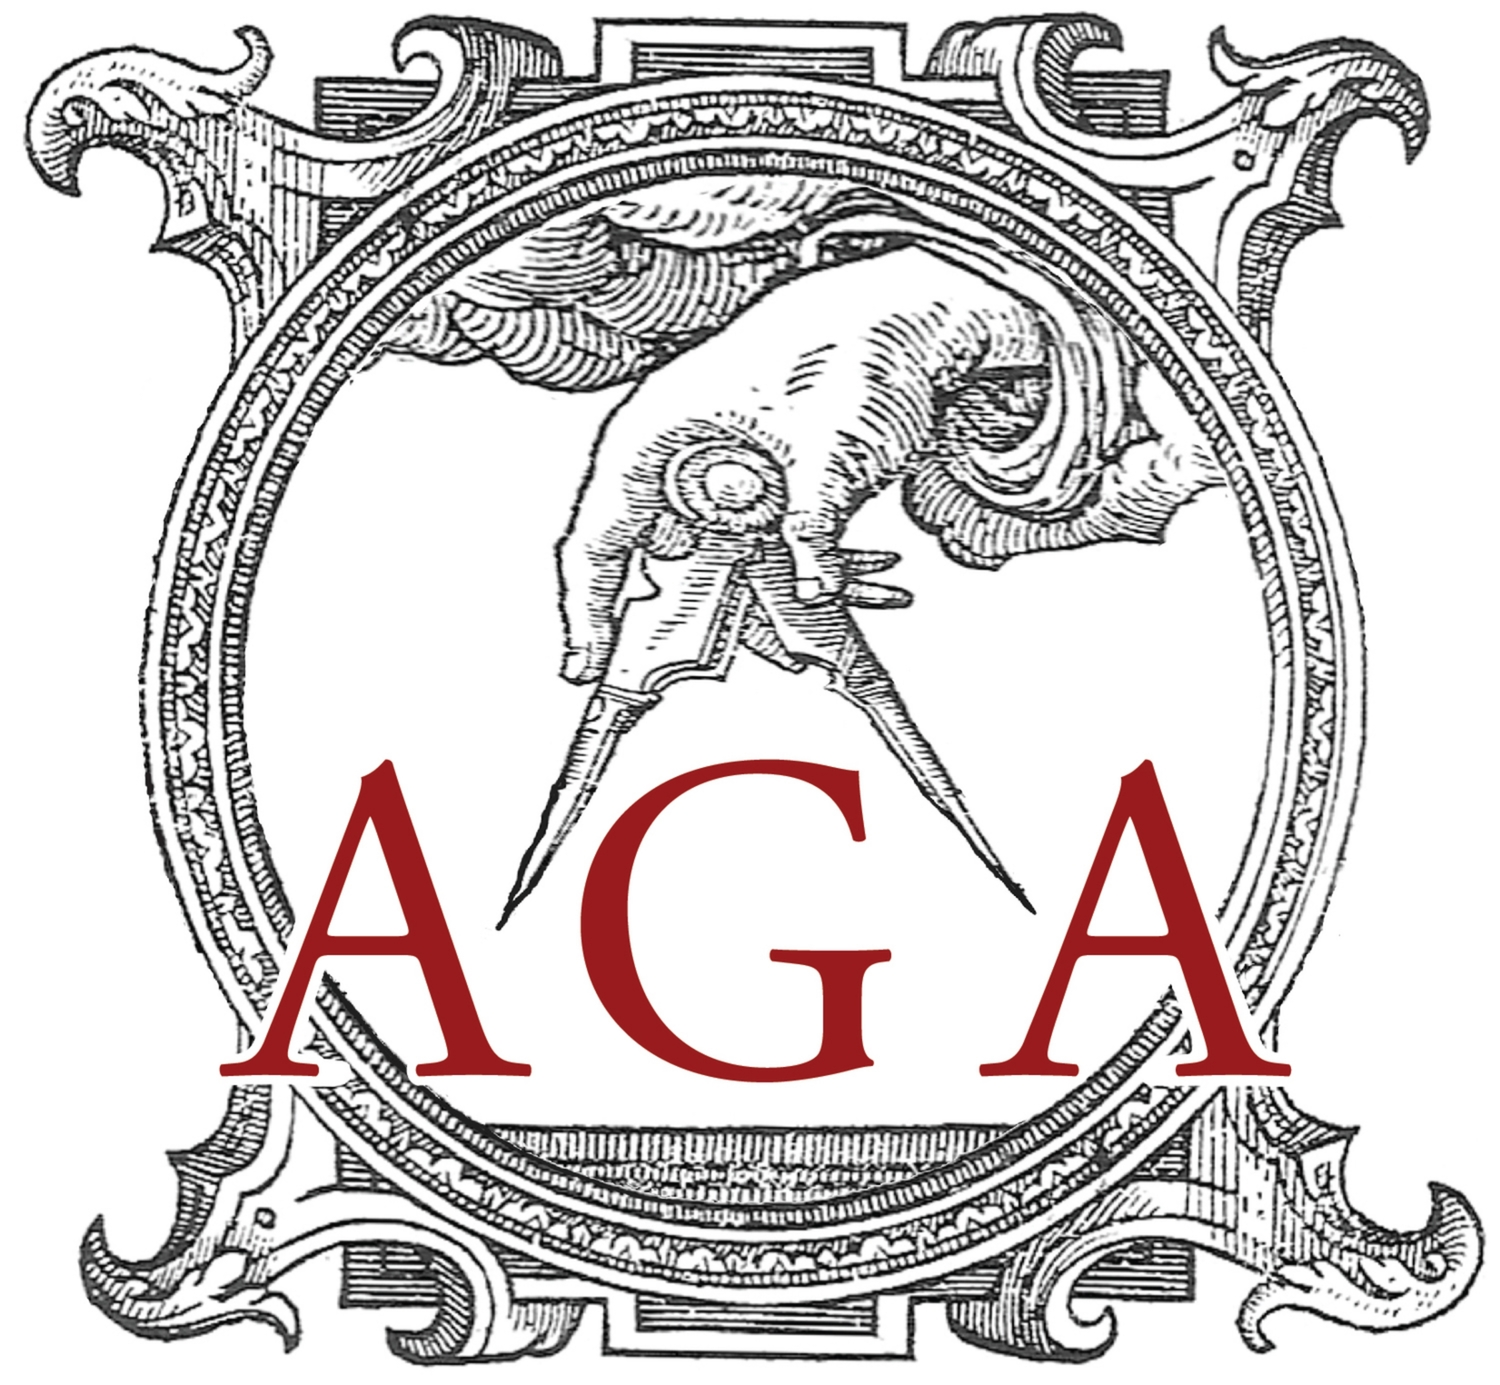 Artisans Guild of America